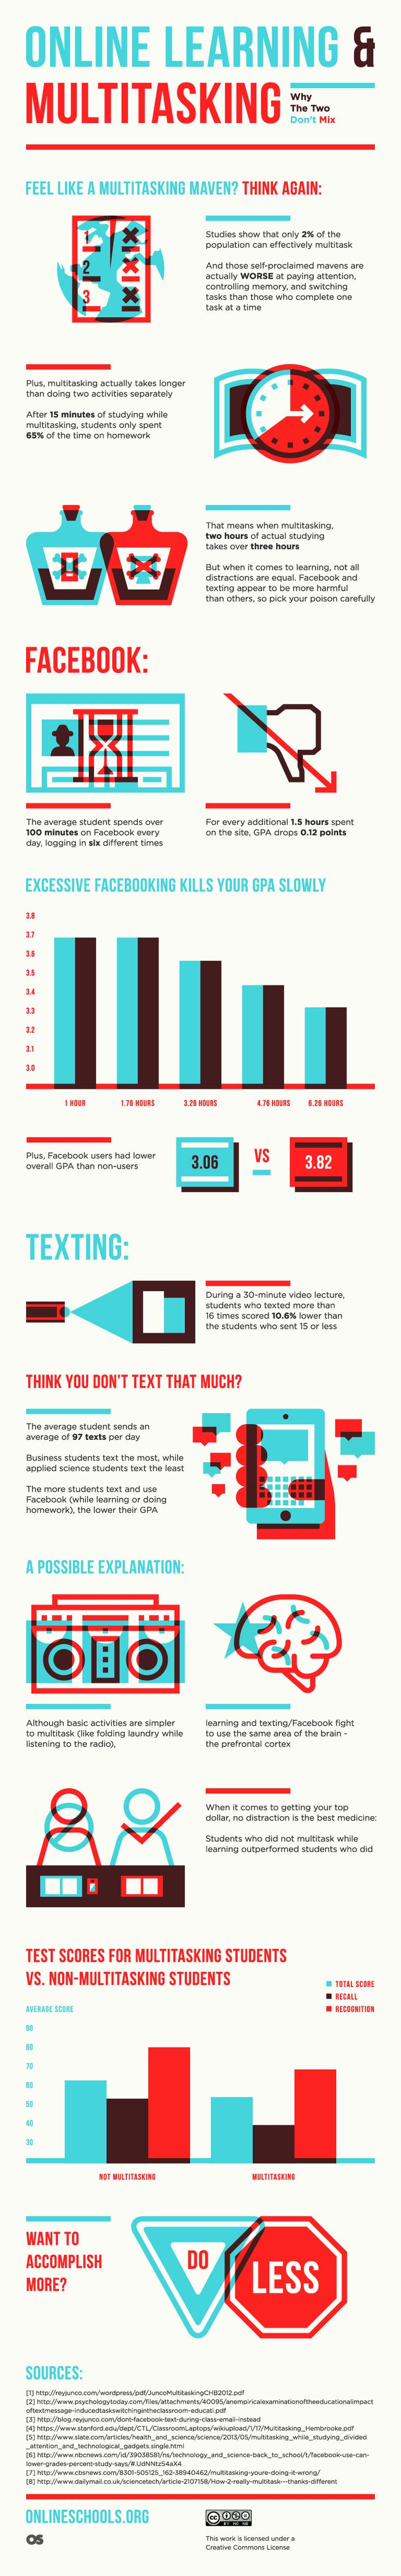 Online Learning and Multitasking - Visual Academy